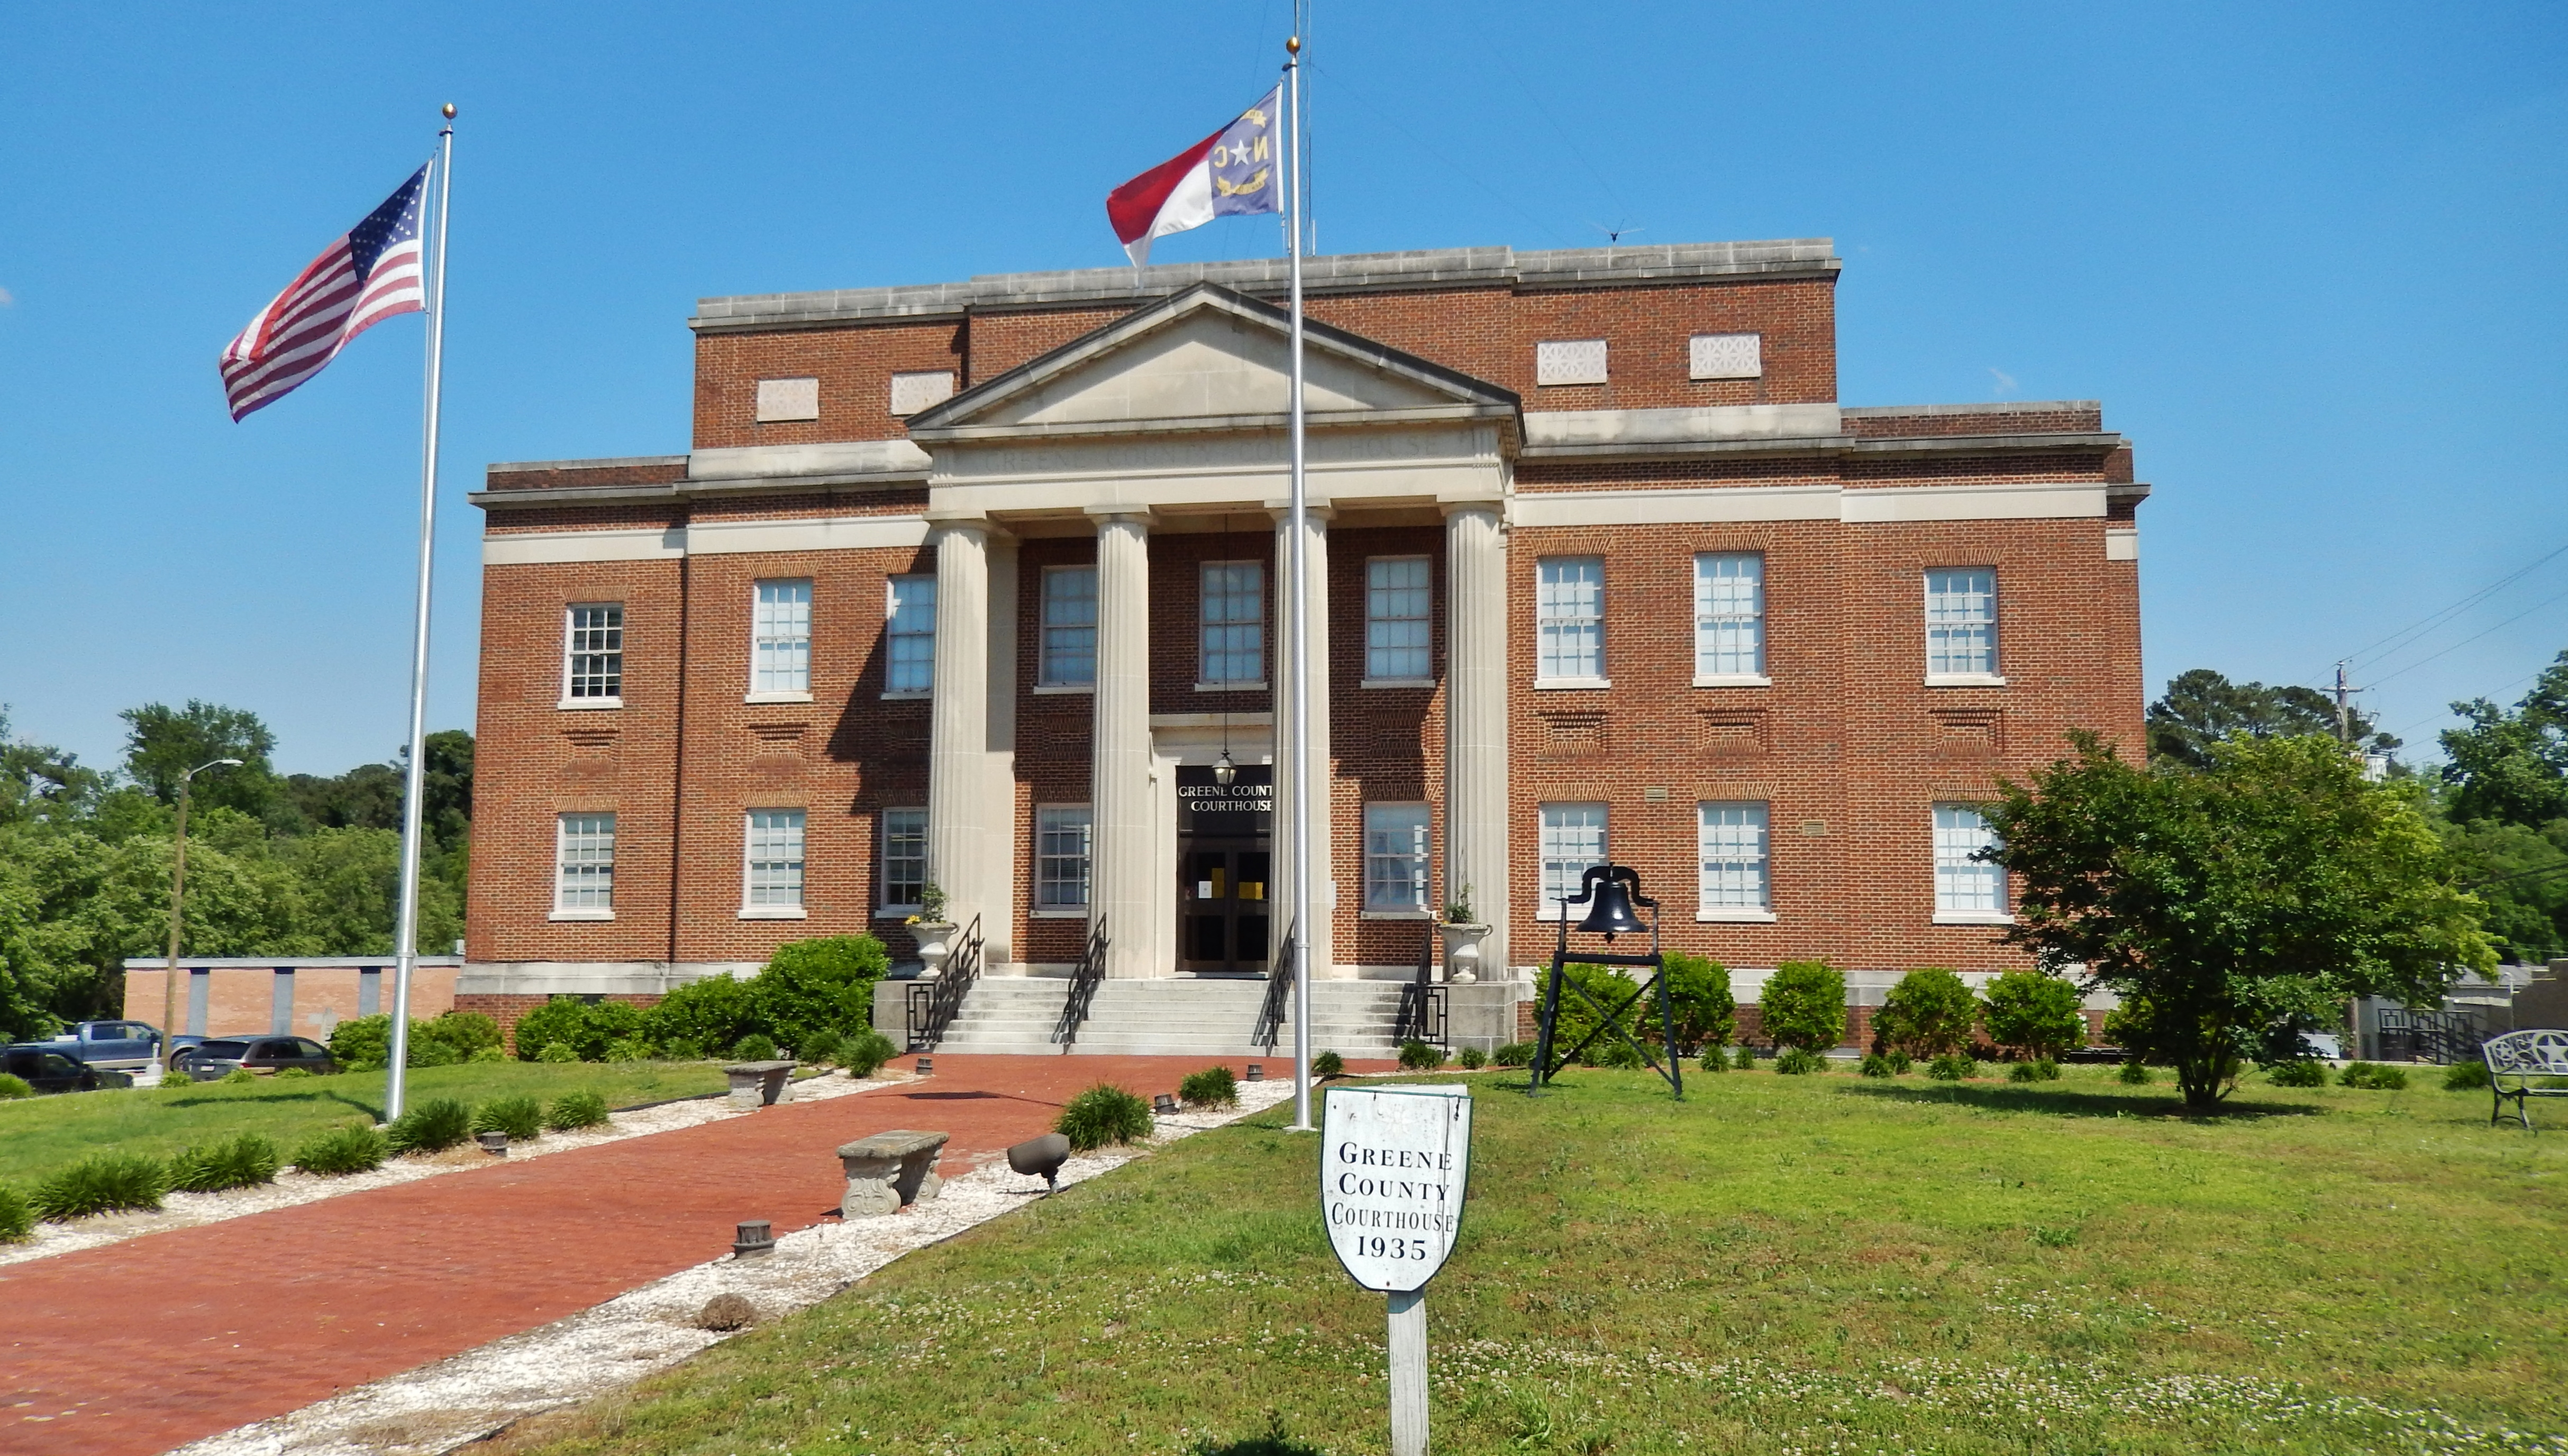 Greene County Courthouse (<i>front view; marker located just beyond image to the right</i>)